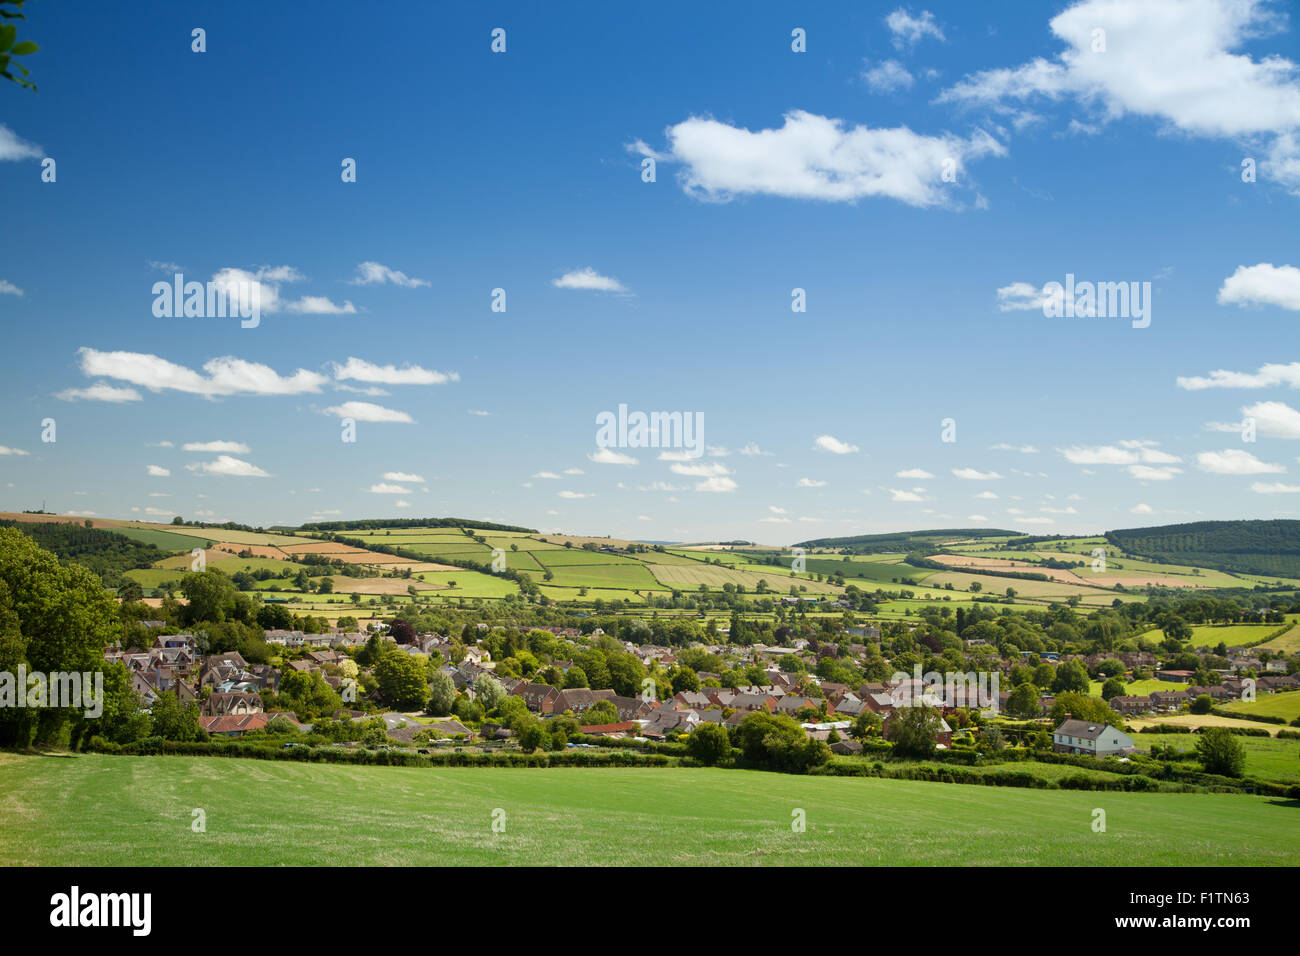 The small market town of Bishop's Castle, Shropshire, England. - Stock Image